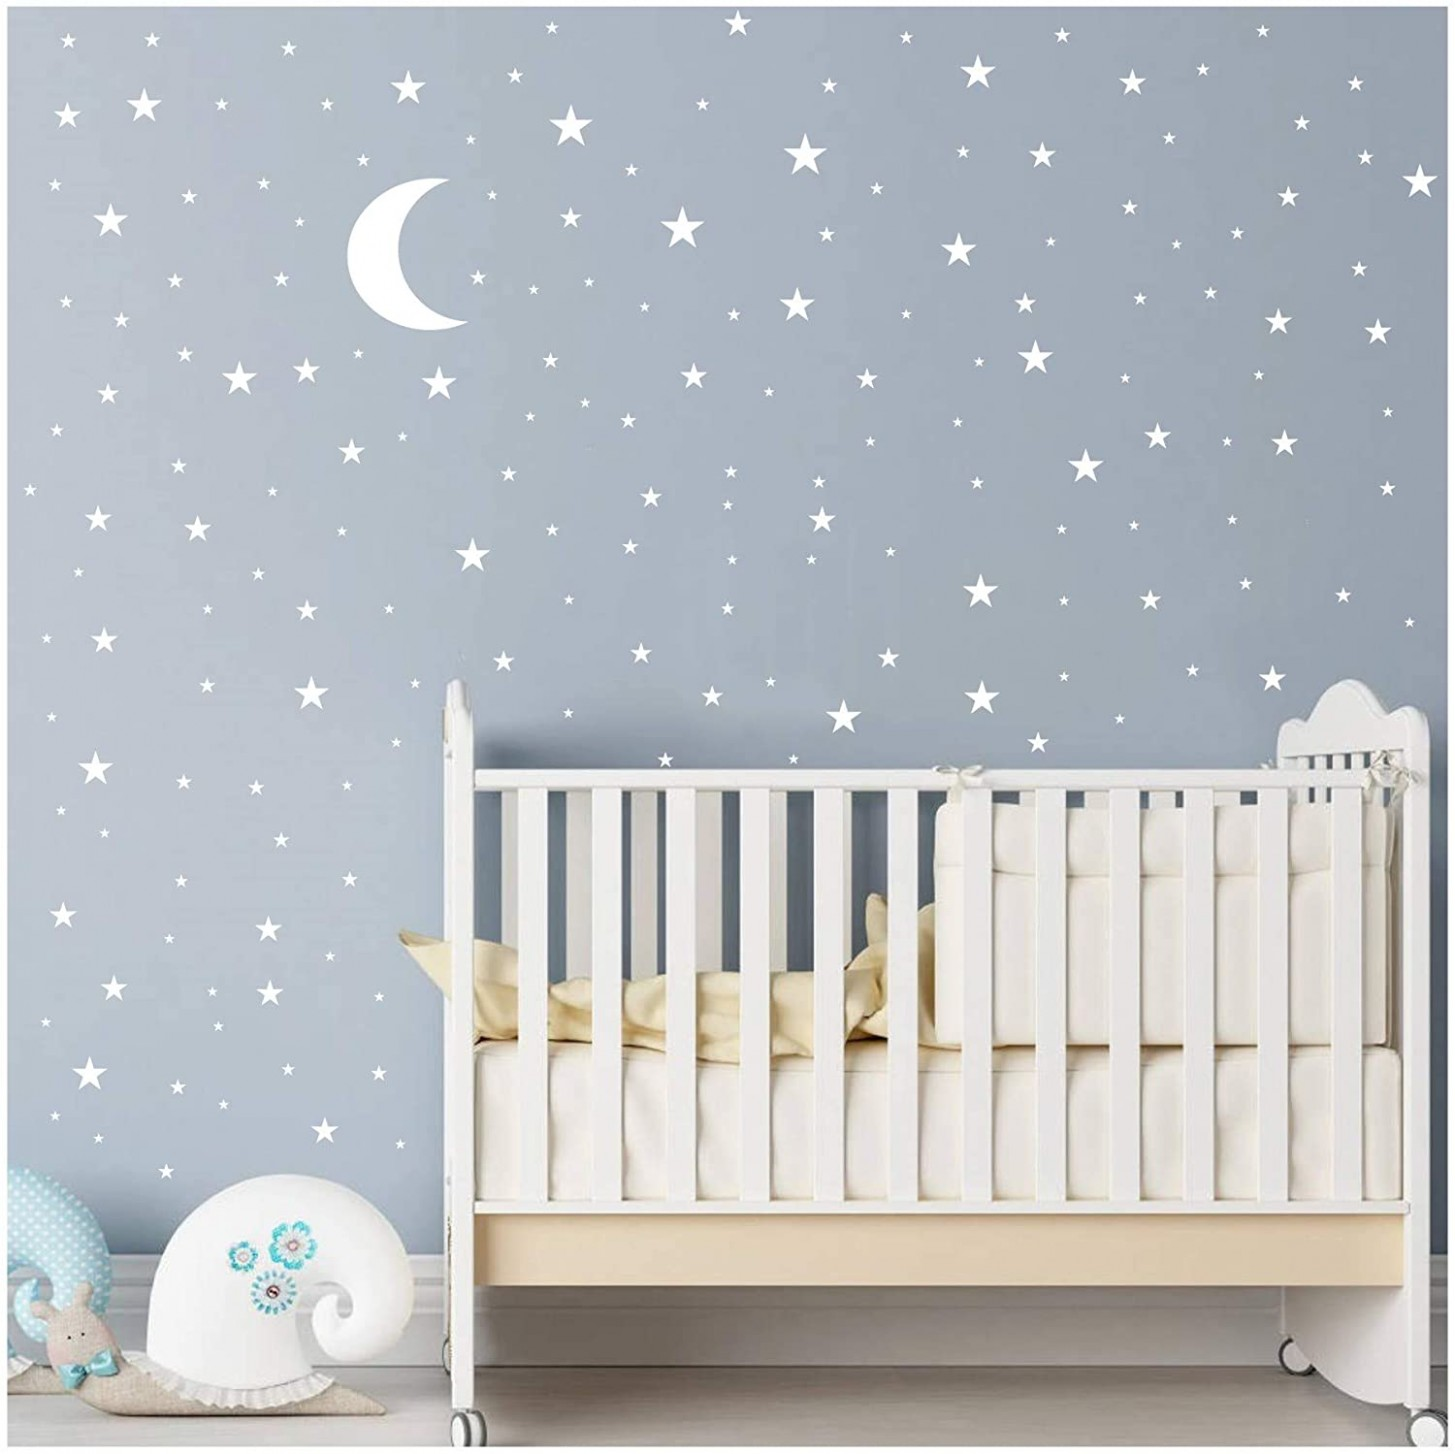 Moon and Stars Wall Decal Vinyl Sticker for Kids Boy Girls Baby Room  Decoration Good Night Nursery Wall Decor Home House Bedroom Design YMX11  (White) - Baby Room Wall Decor